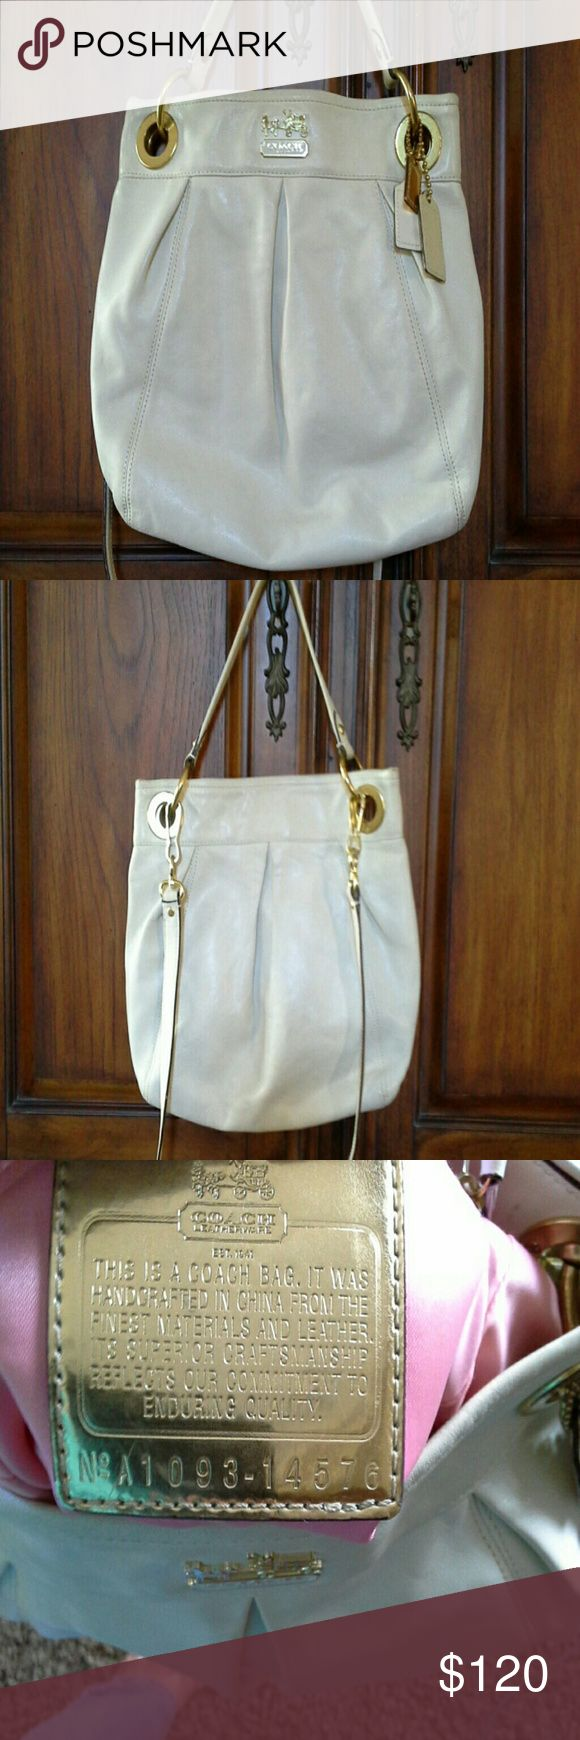 Beautiful  Authentic leather COACH purse Off white color with goldtone rings, pink liner. Inside has some marks, outside  is in pretty good condition. Has long strap. Coach  Bags Totes